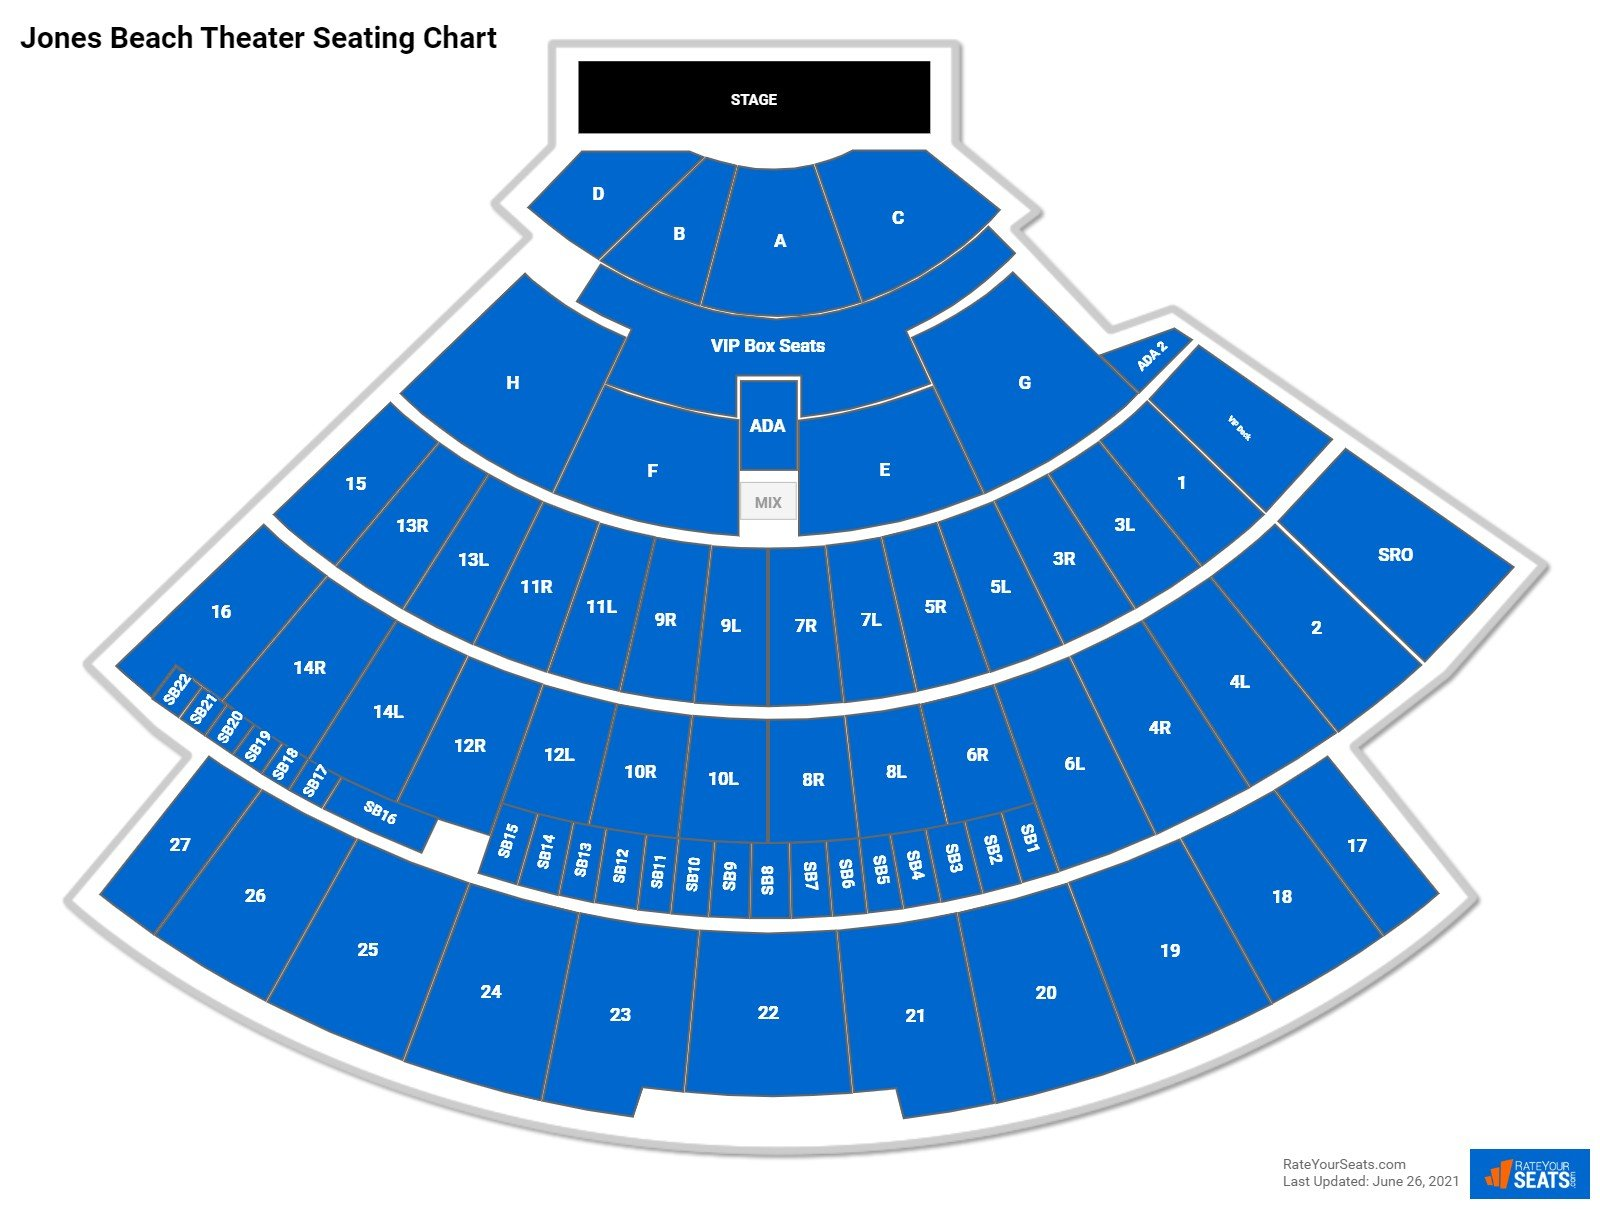 Jones Beach Theater Seating Chart